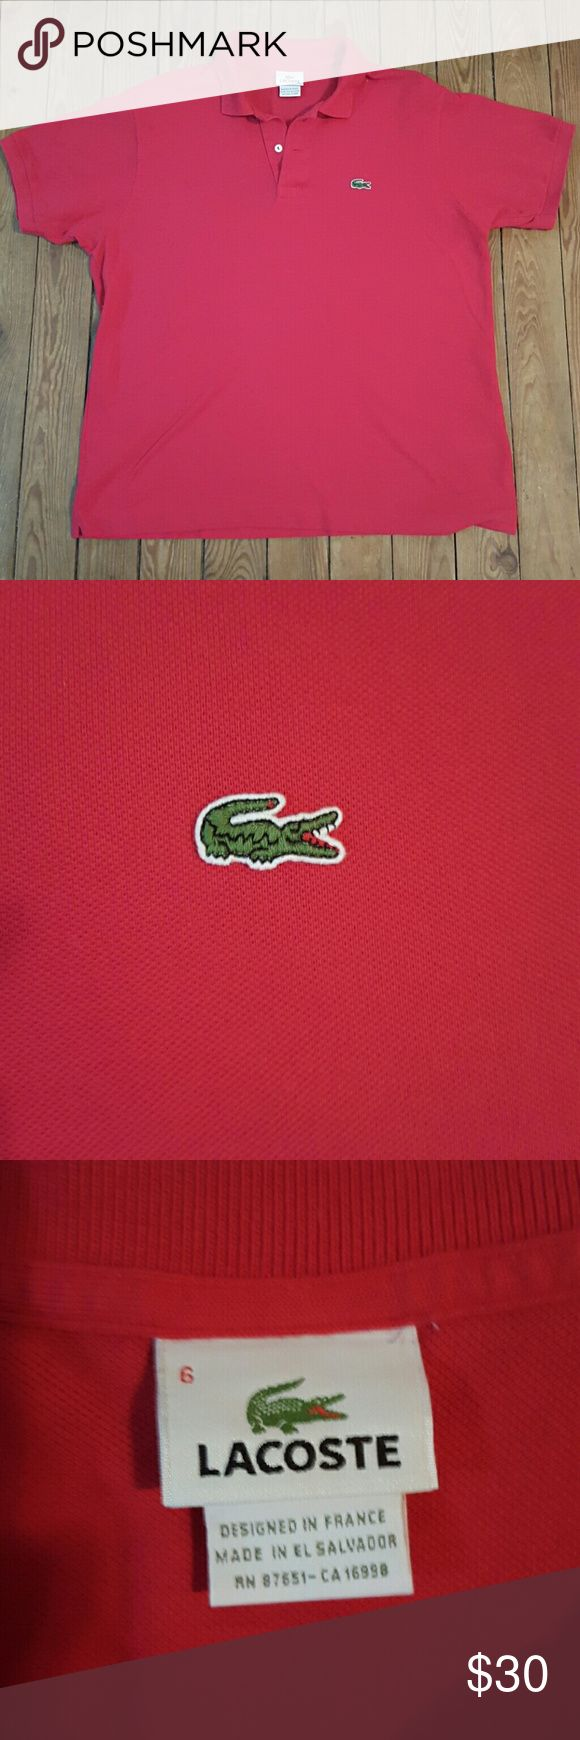 Like New! Lacoste Classic Polo Men's Lacoste Polo.   Like new!  Only worn a couple of times.   Vibrant red color.   100% authentic.  I bought this online from Lacoste.   Size 6 on tag.  Fits like a men's large or women's XL.  I wear it with leggings.  Great shirt! Lacoste Shirts Polos